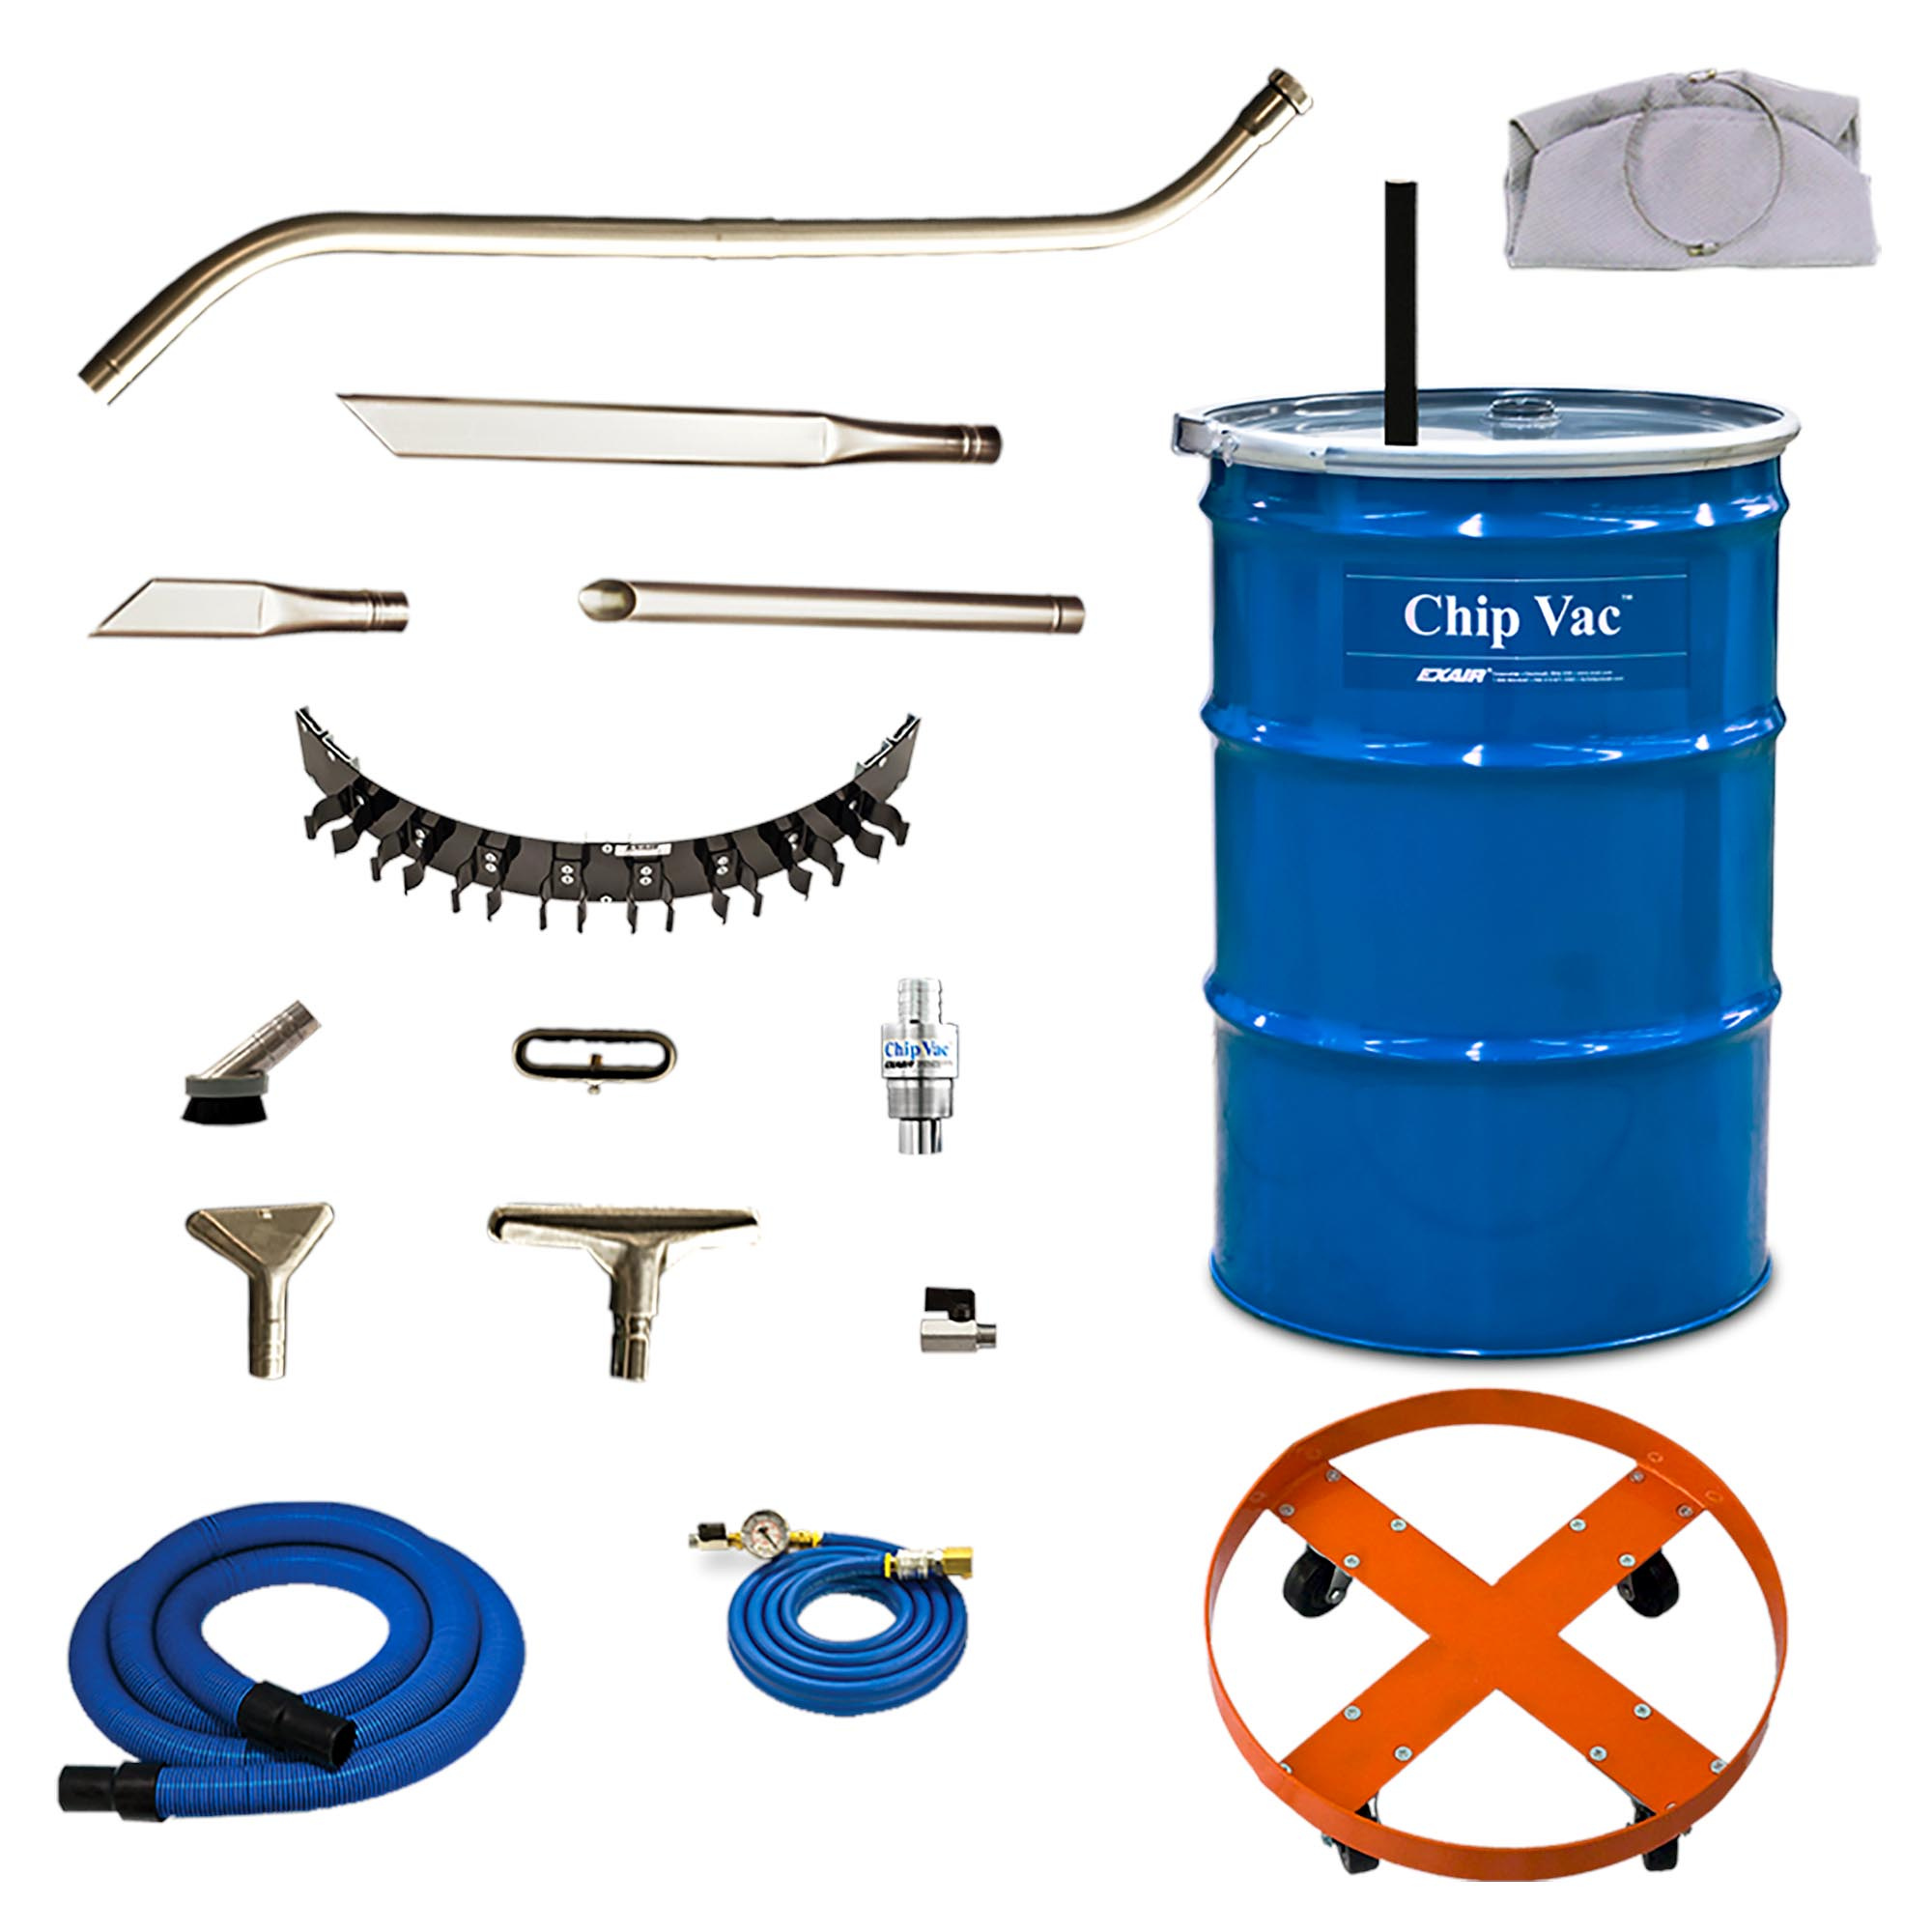 Model 6393-30 30 Gallon Premium Chip Vac System